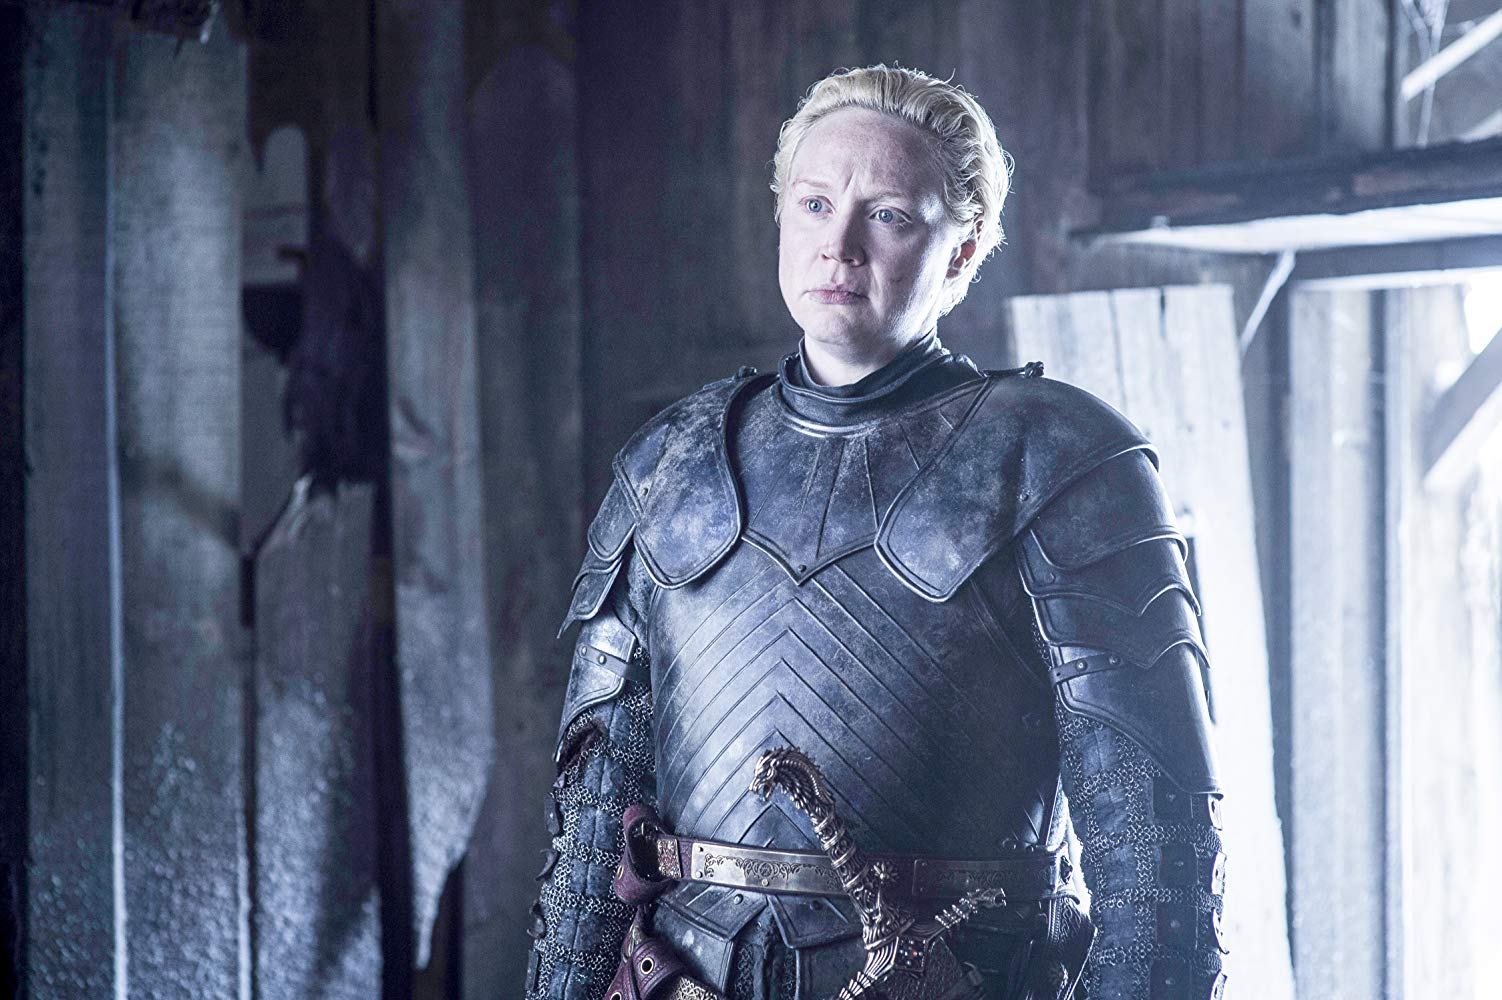 Bienne of Tarth (Gwendoline Christie) in 'Game of Thrones'. (Source: IMDB)